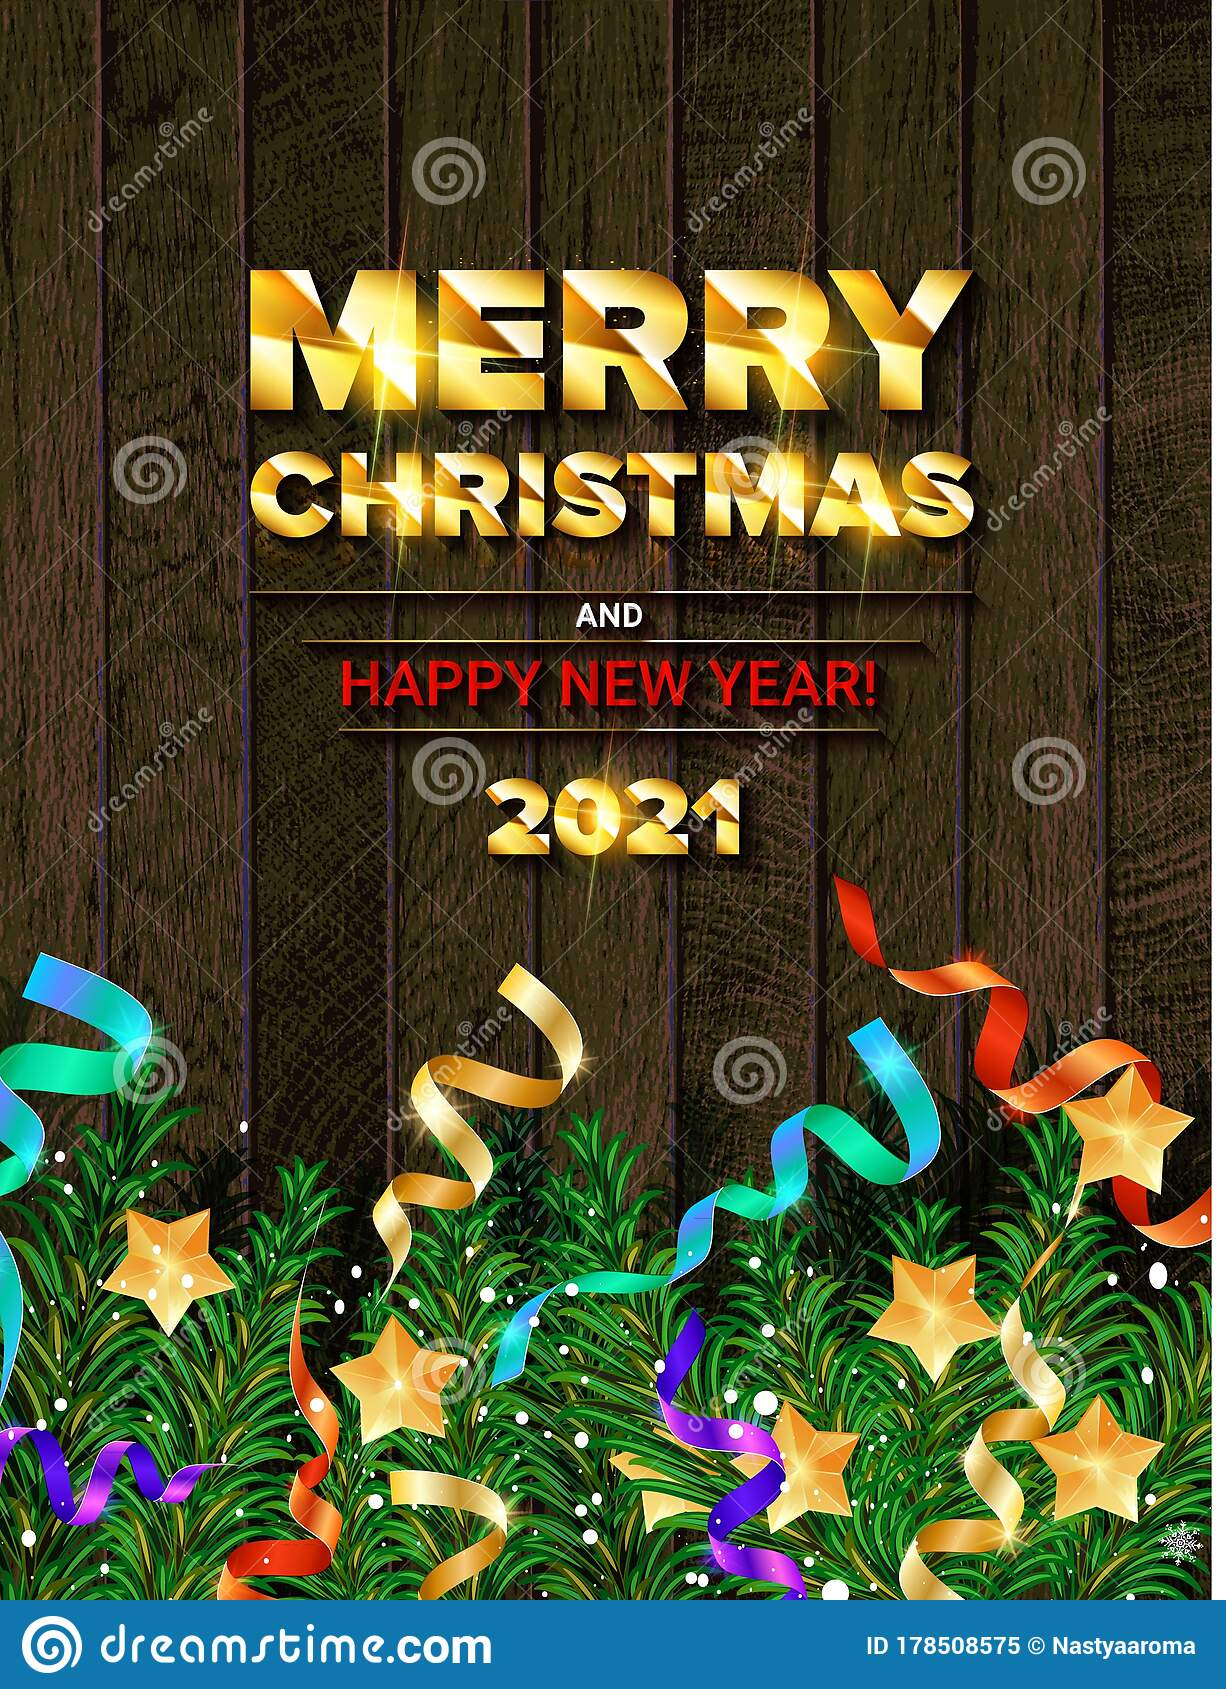 merry christmas and happy new year 2021 stock illustration illustration of evening greeting 178508575 dreamstime com